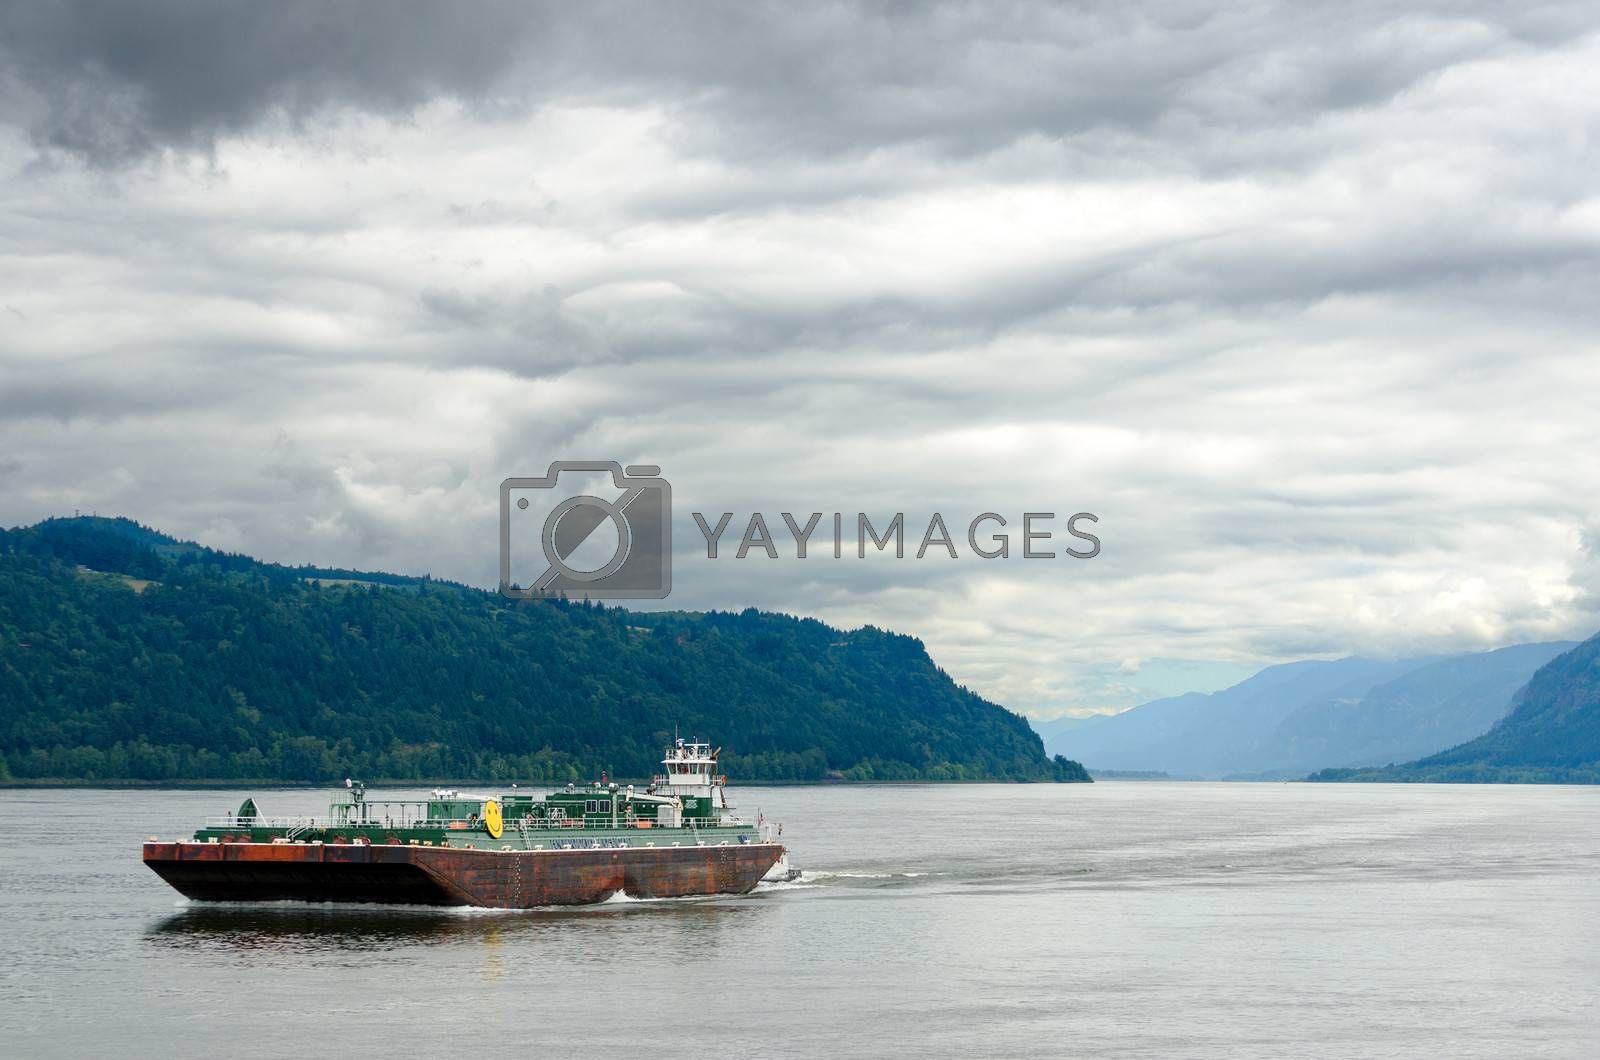 A barge passing through the Columbia River Gorge between Oregon and Washington